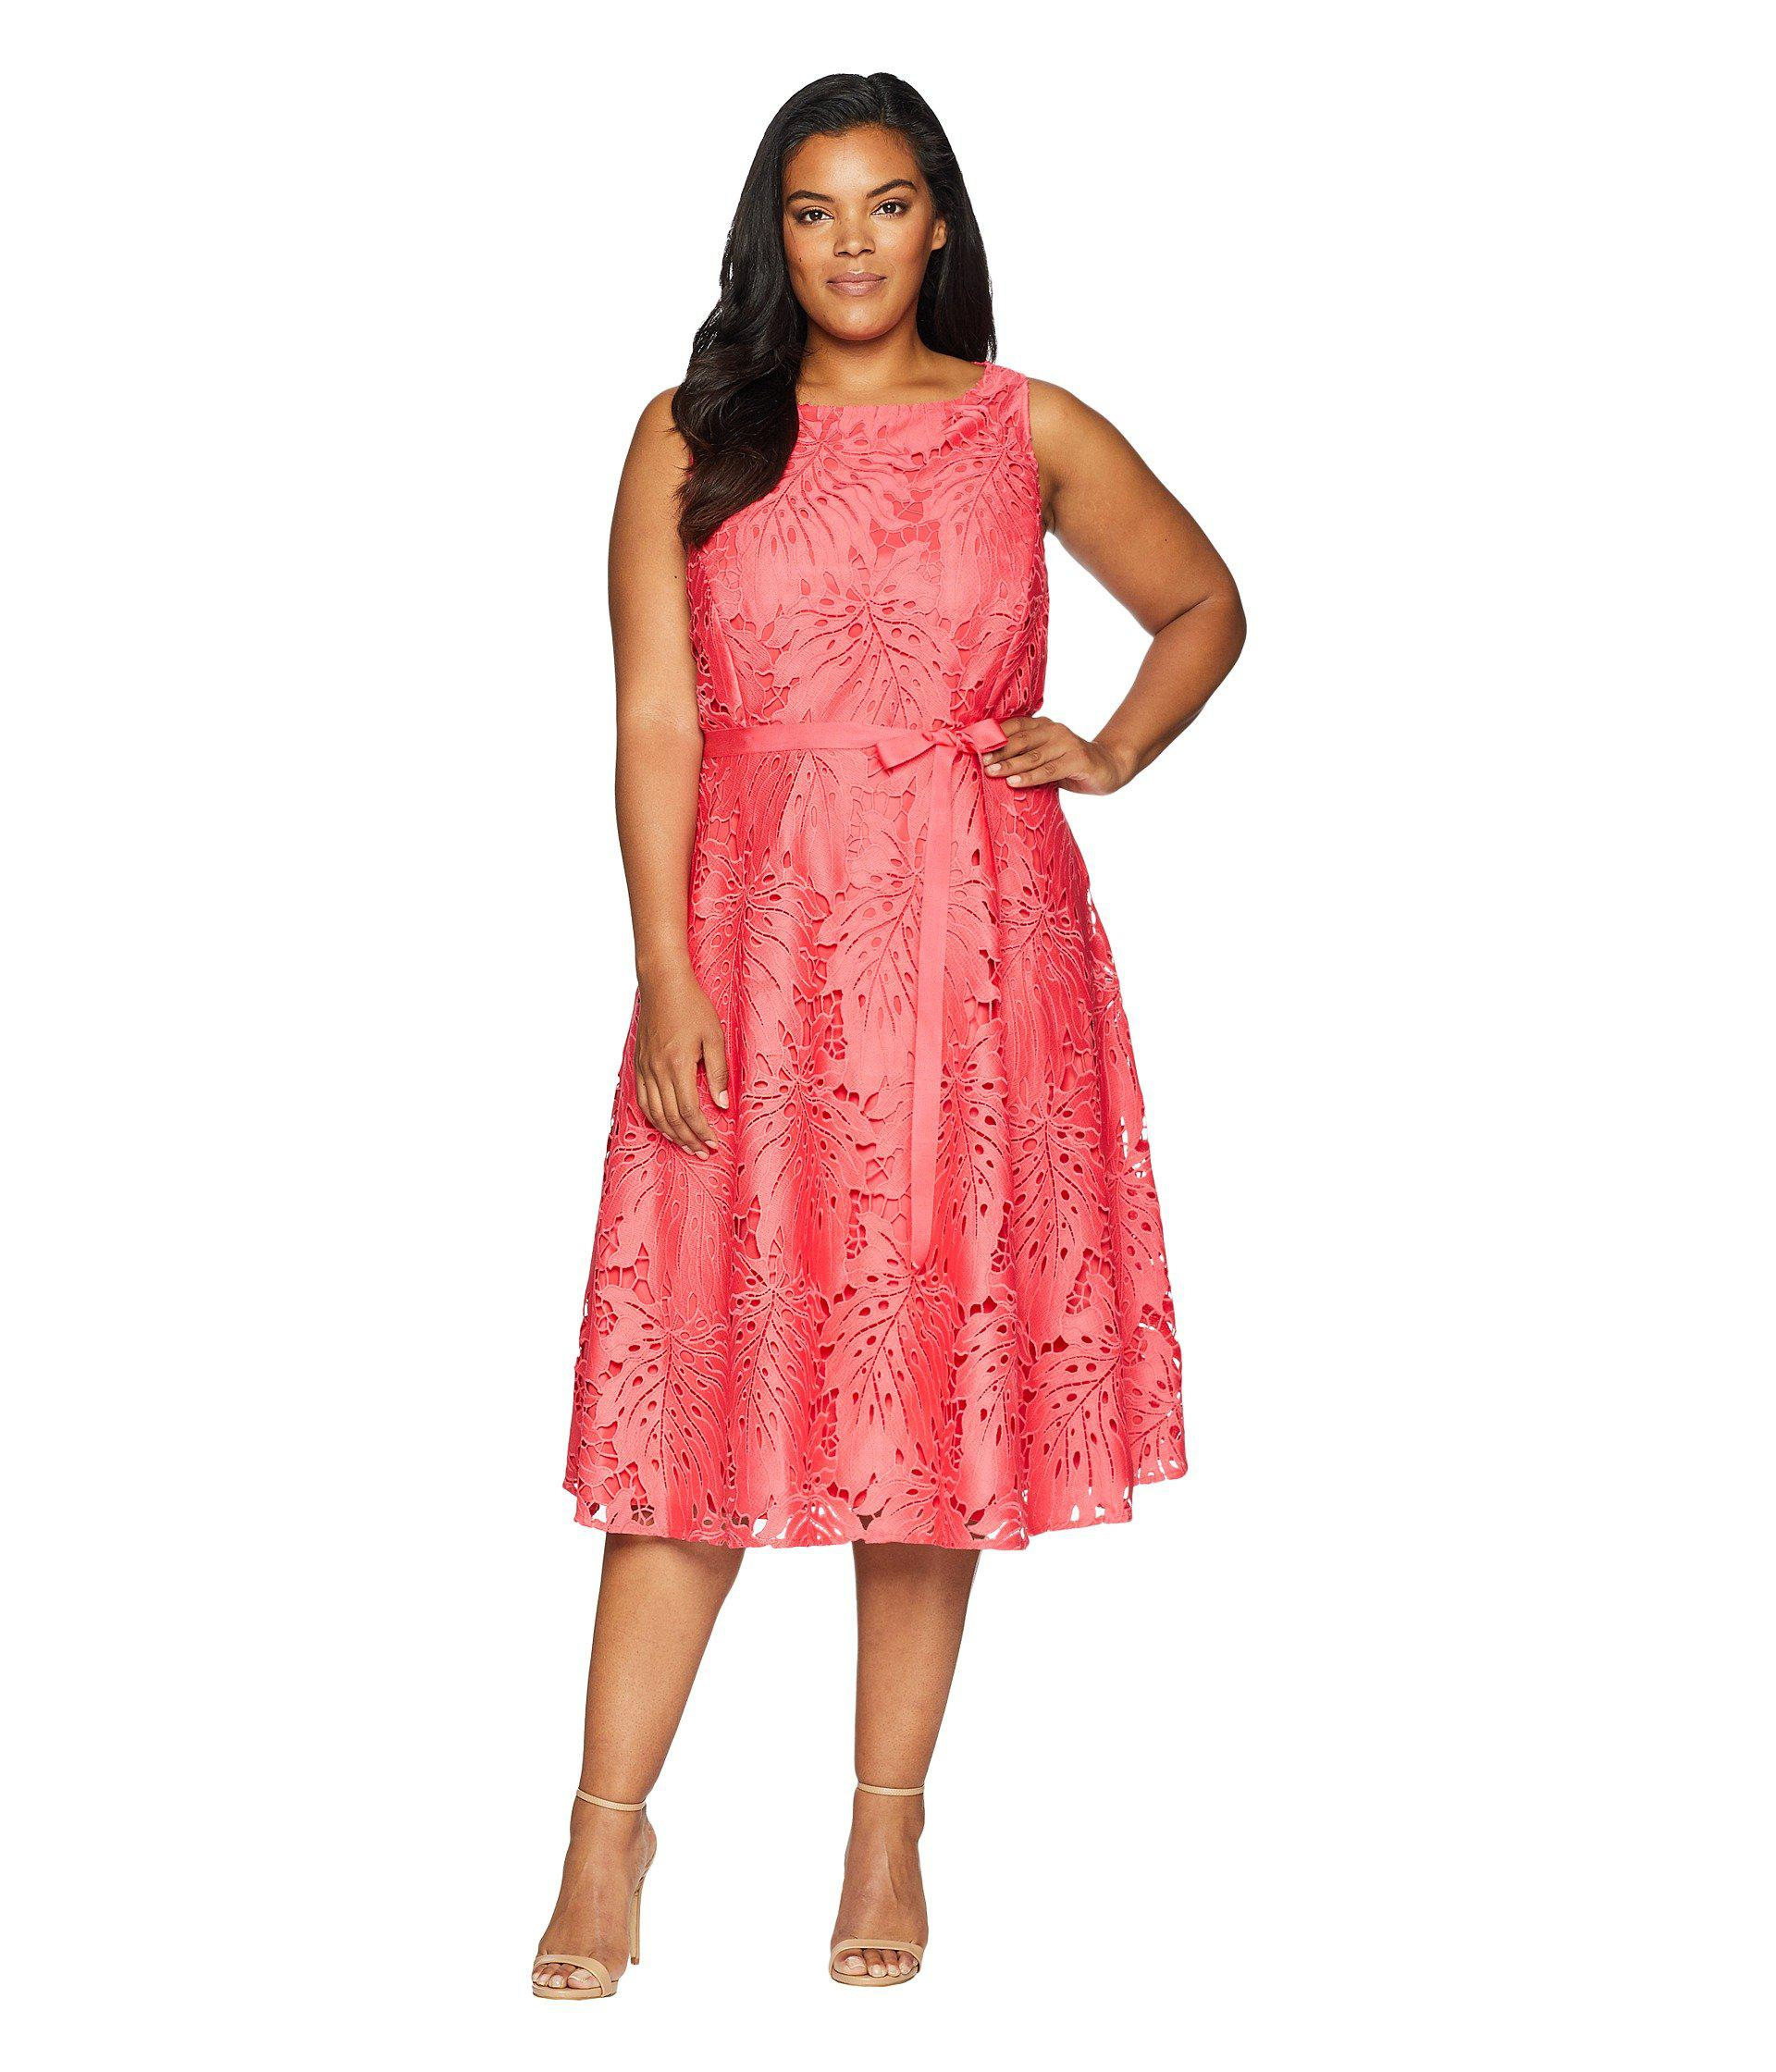 b6ff78a70b5 Tahari Plus Size Sleeveless Chemical Lace Fit And Flare Midi in Red ...